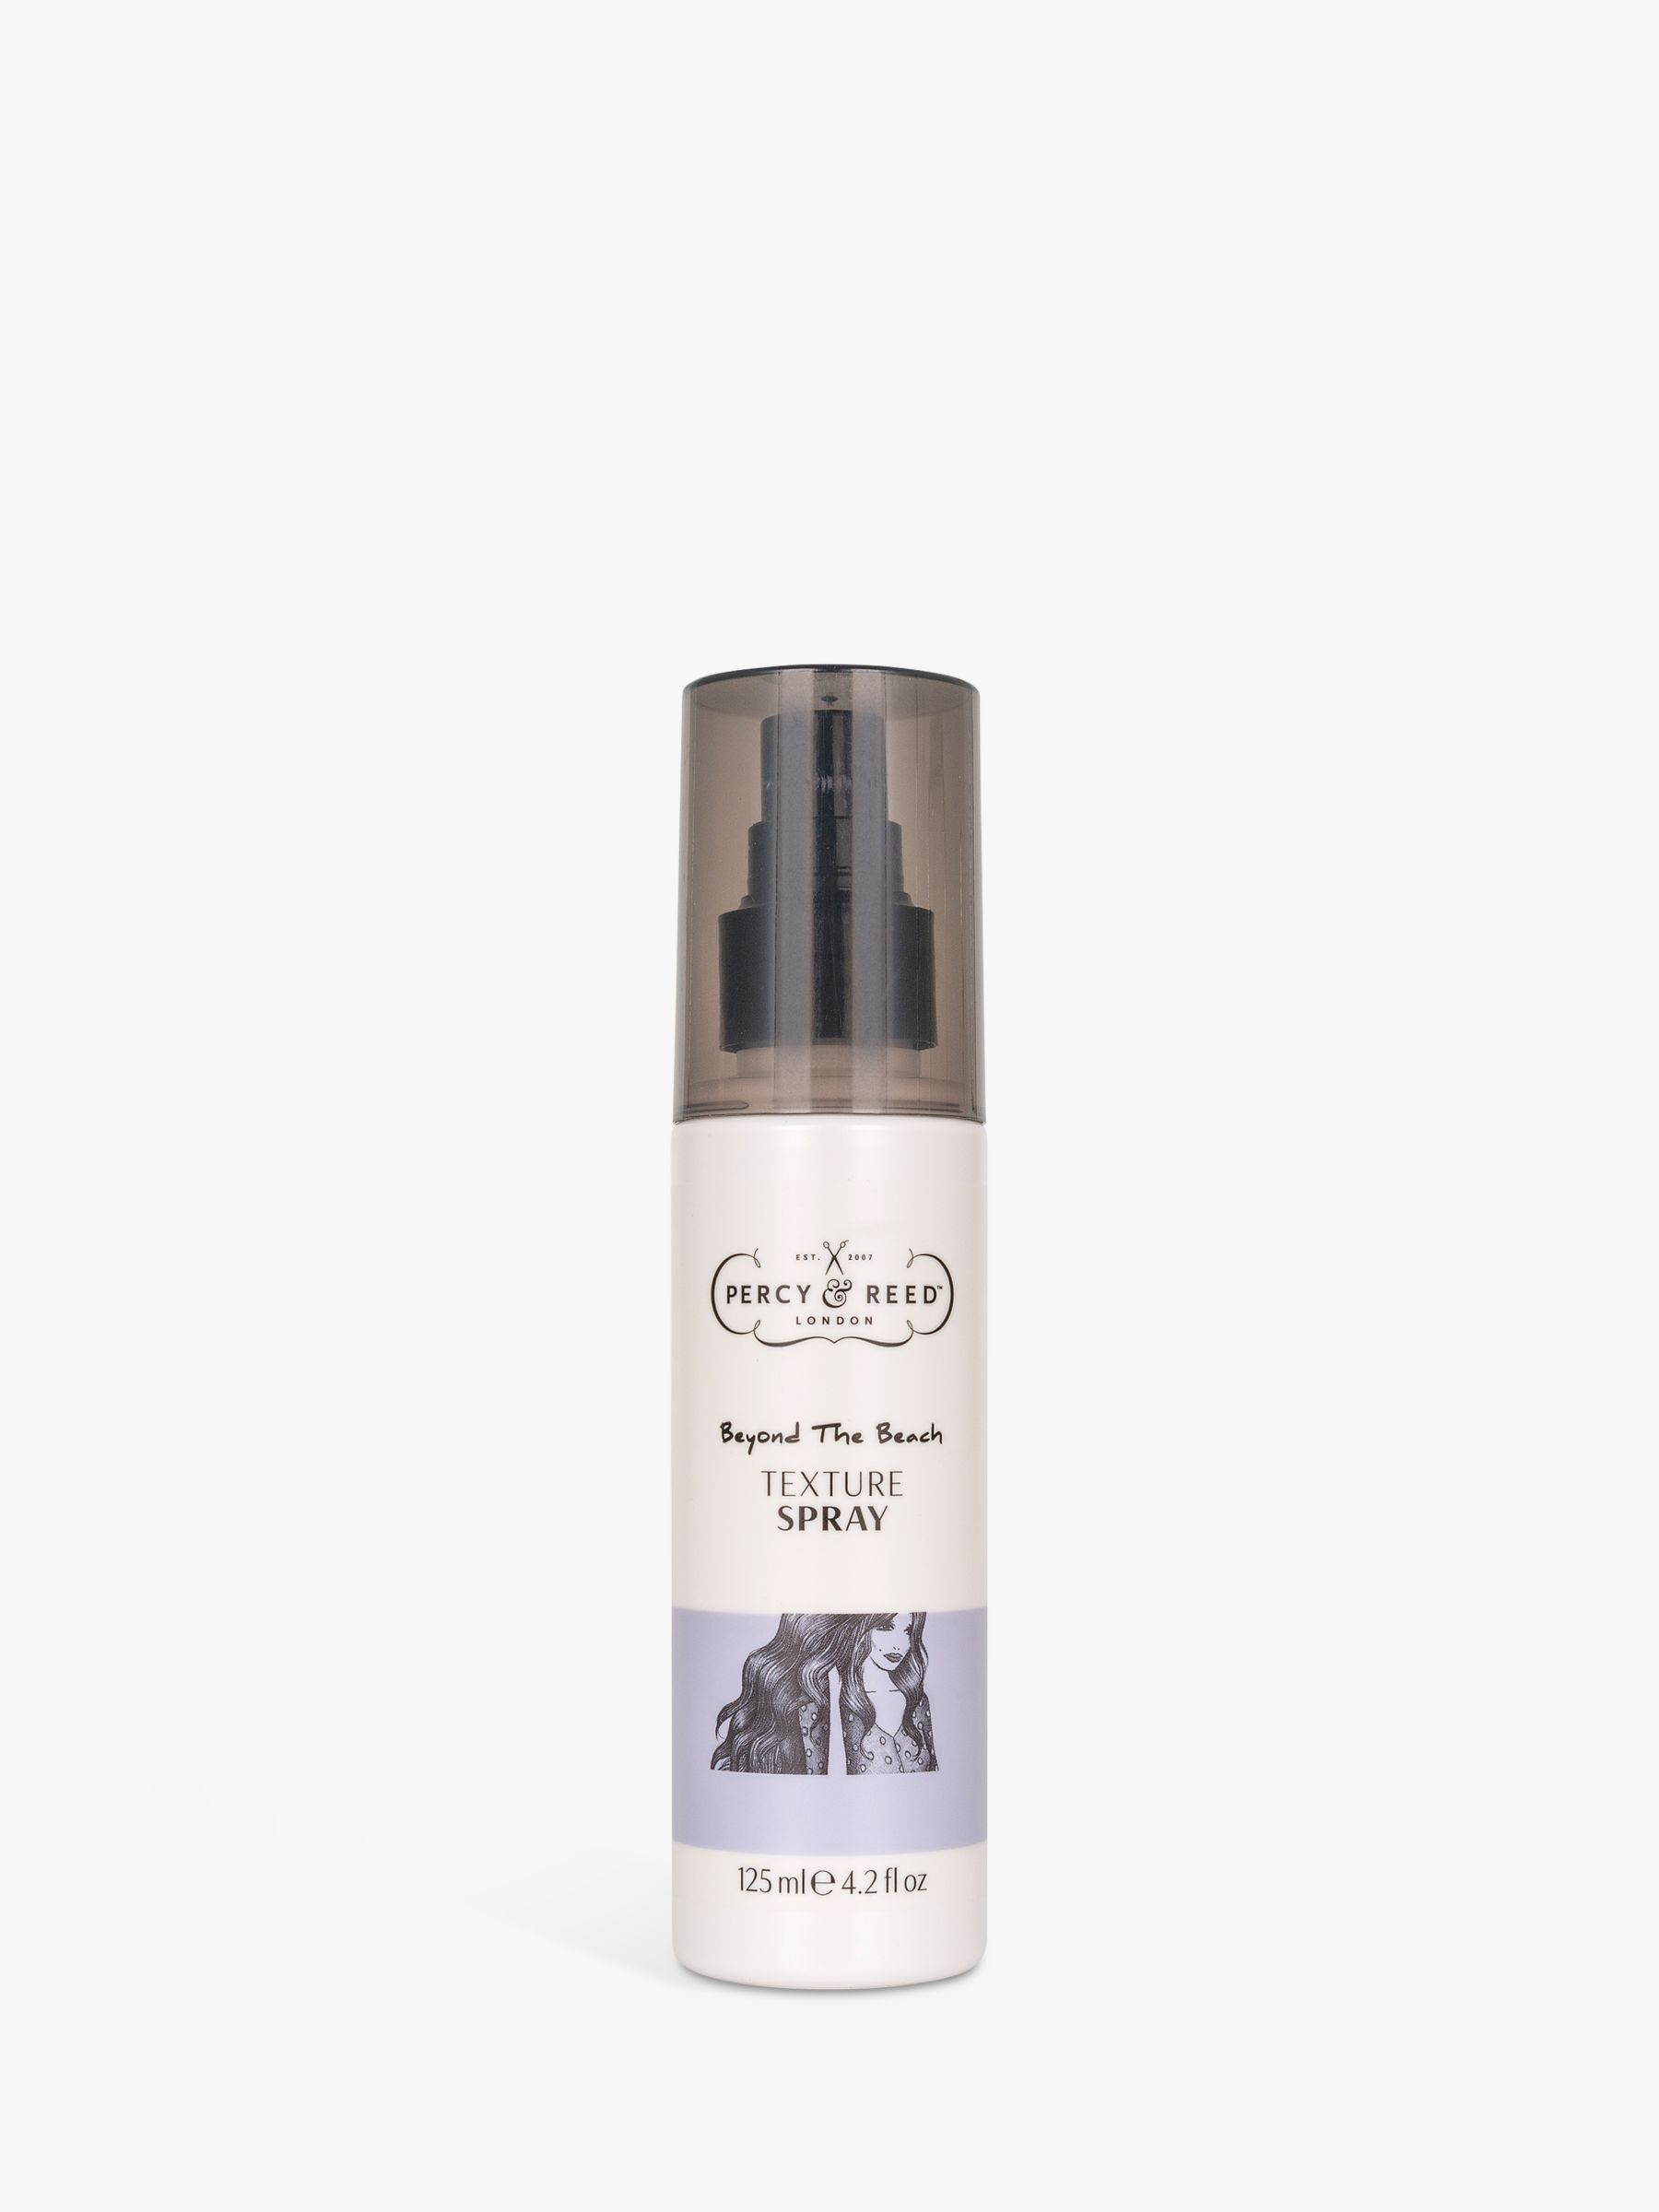 Percy & Reed Percy & Reed Beyond The Beach Texture Spray, 125ml